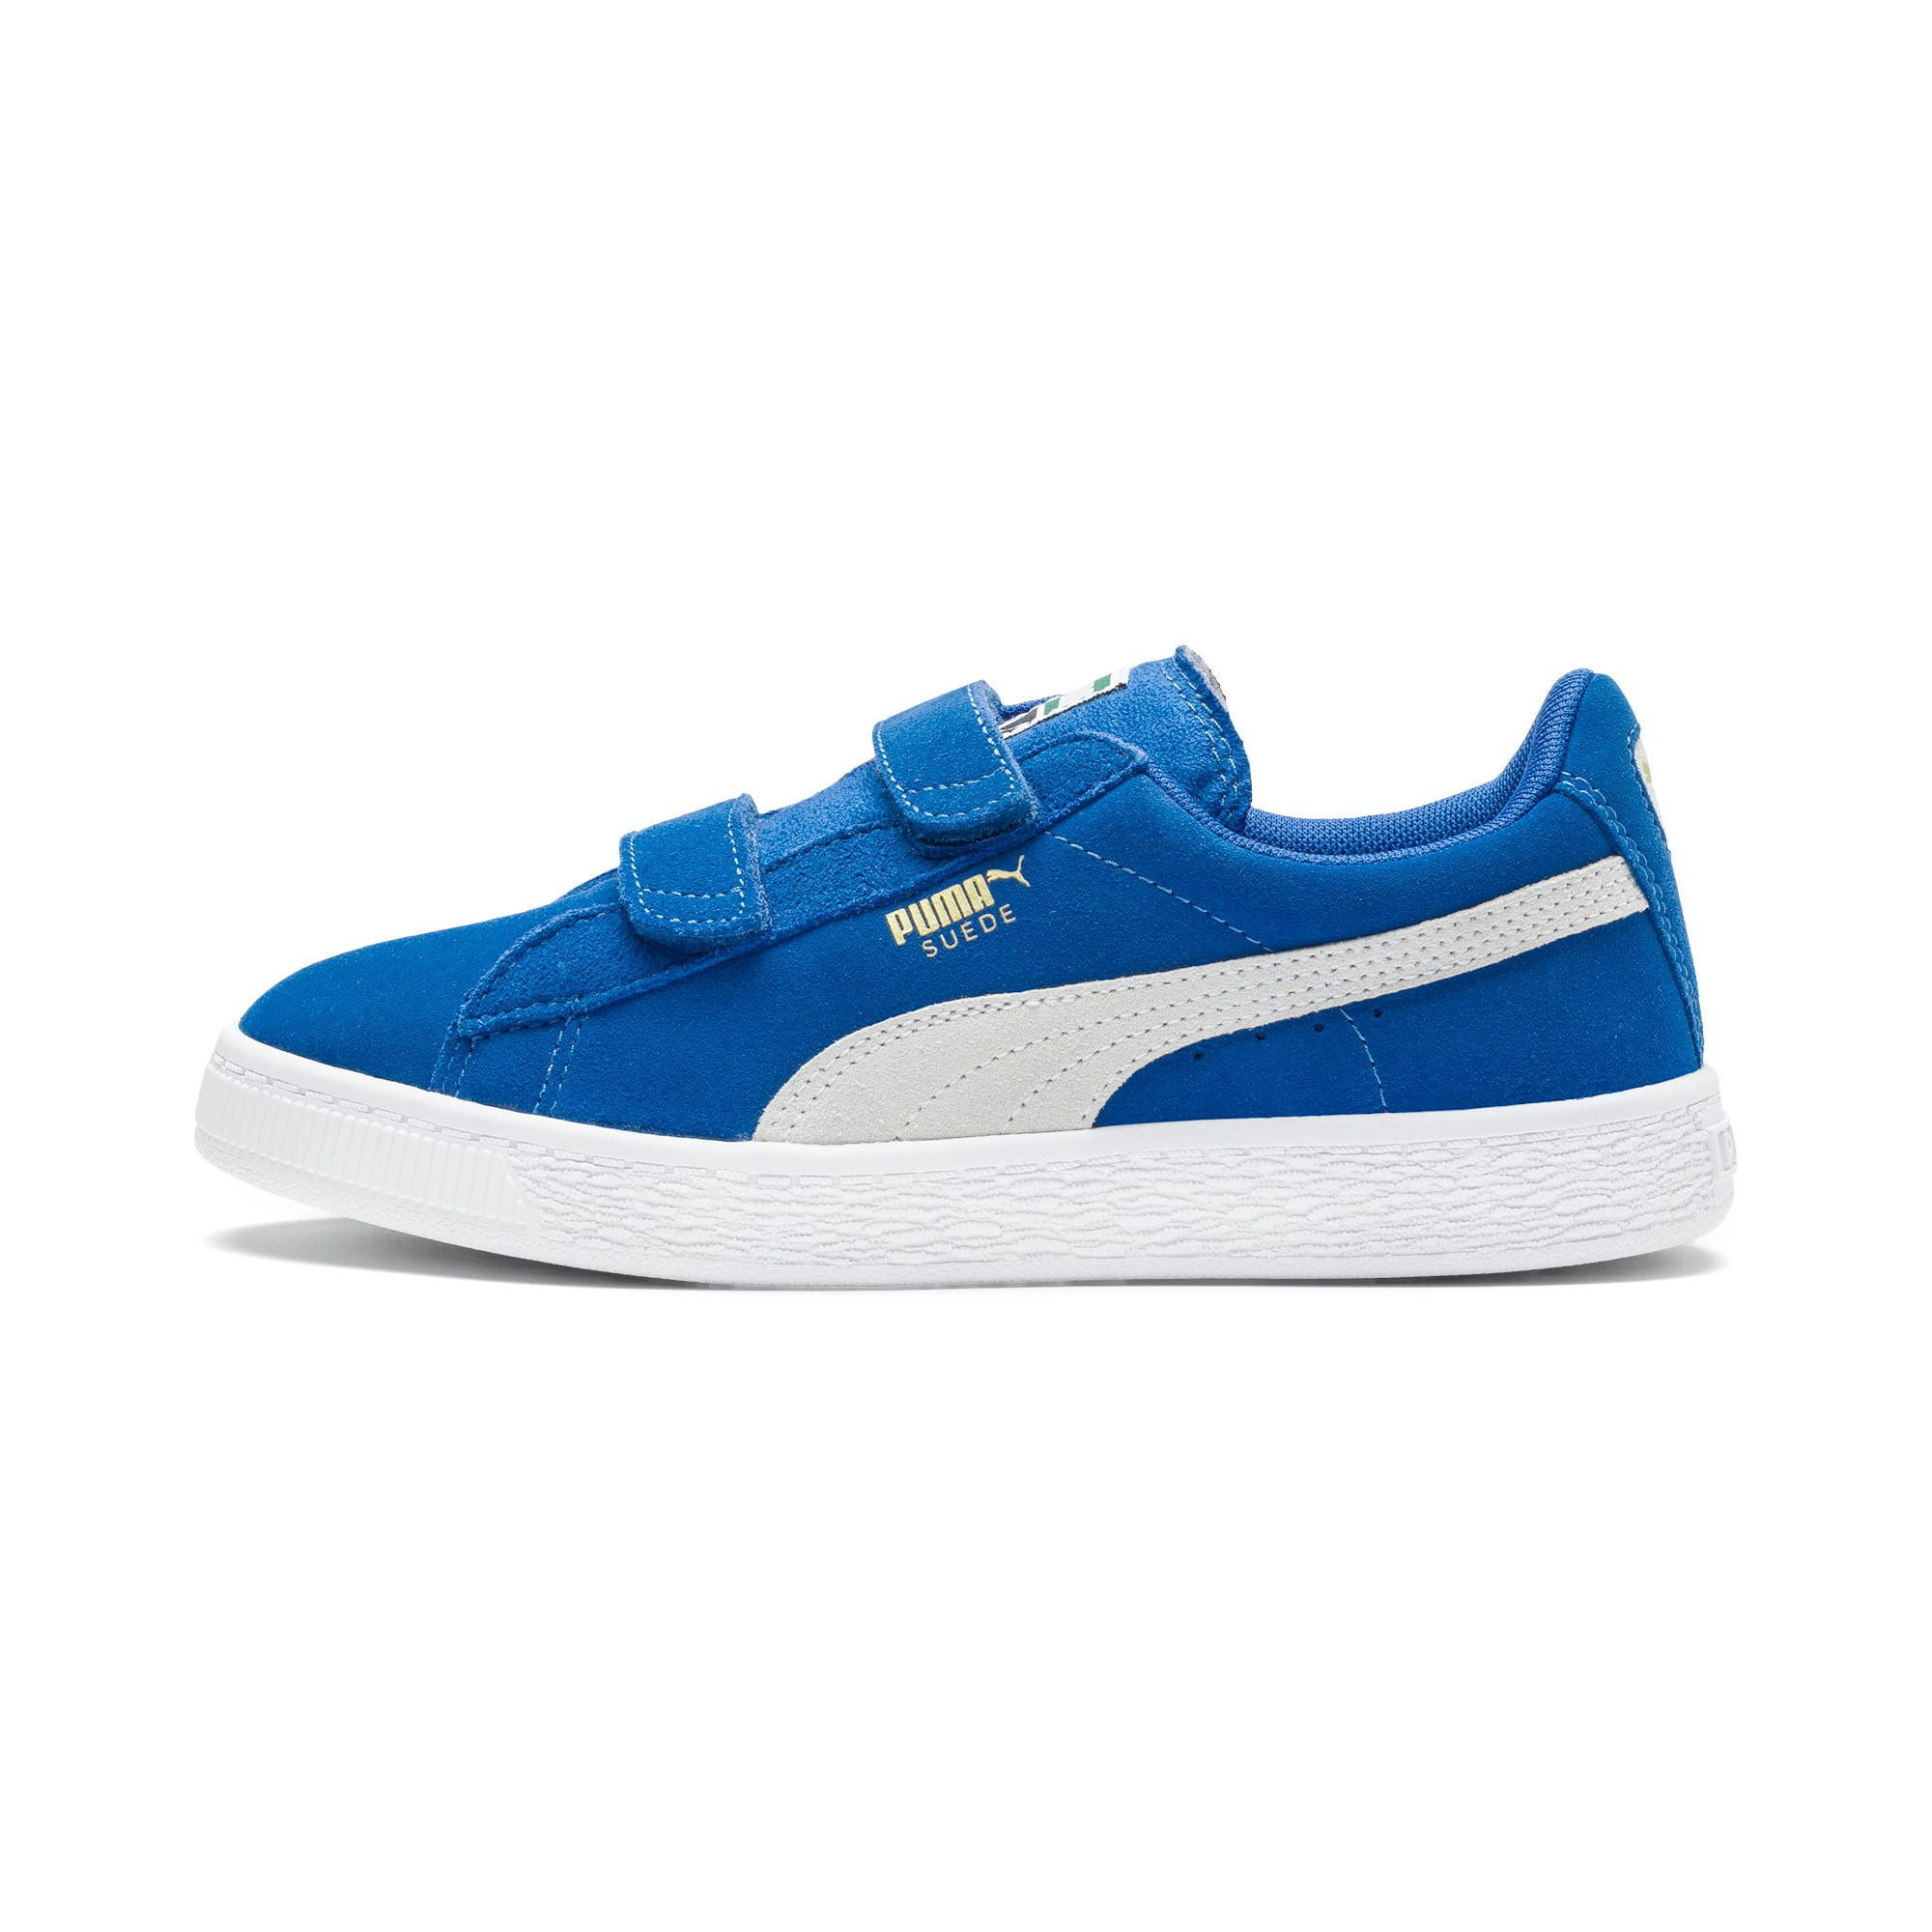 Thumbnail 1 of Suede Kids' Trainers, Snorkel Blue-Puma White, medium